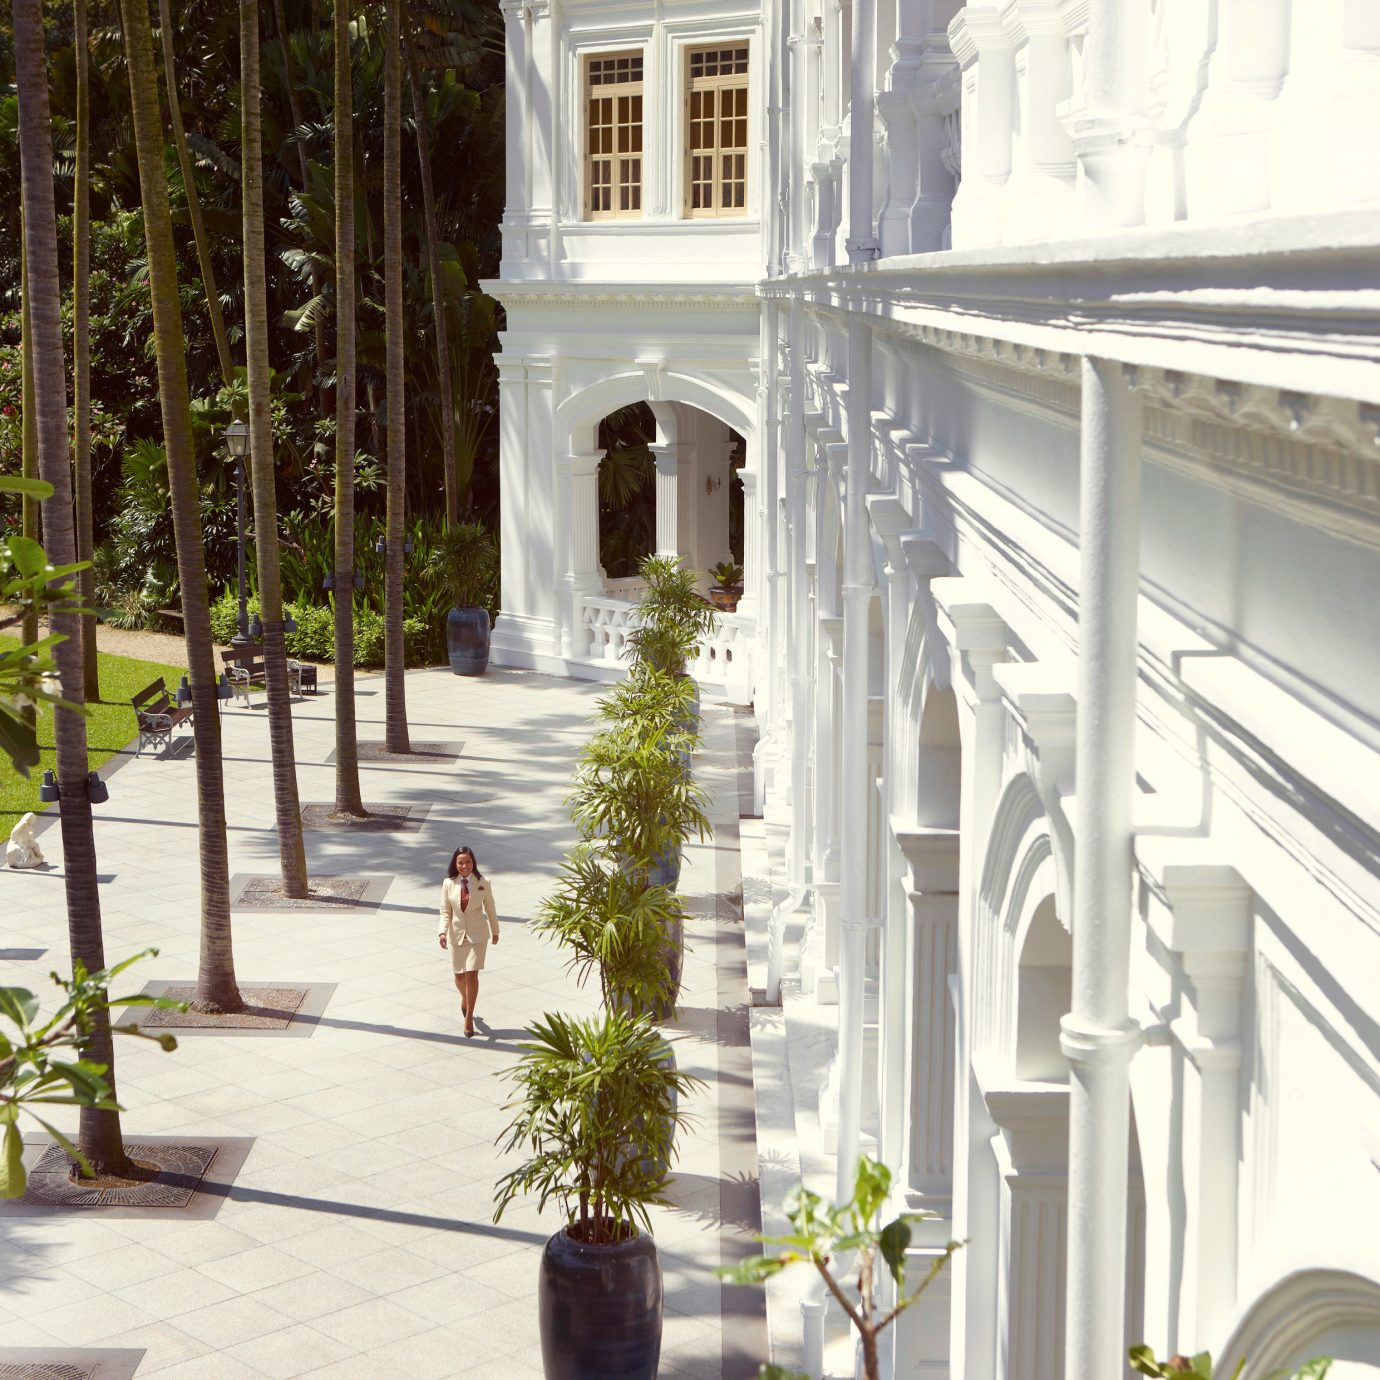 Architecture Buildings Exterior Historic Hotels property building house home Courtyard mansion condominium plant handrail porch